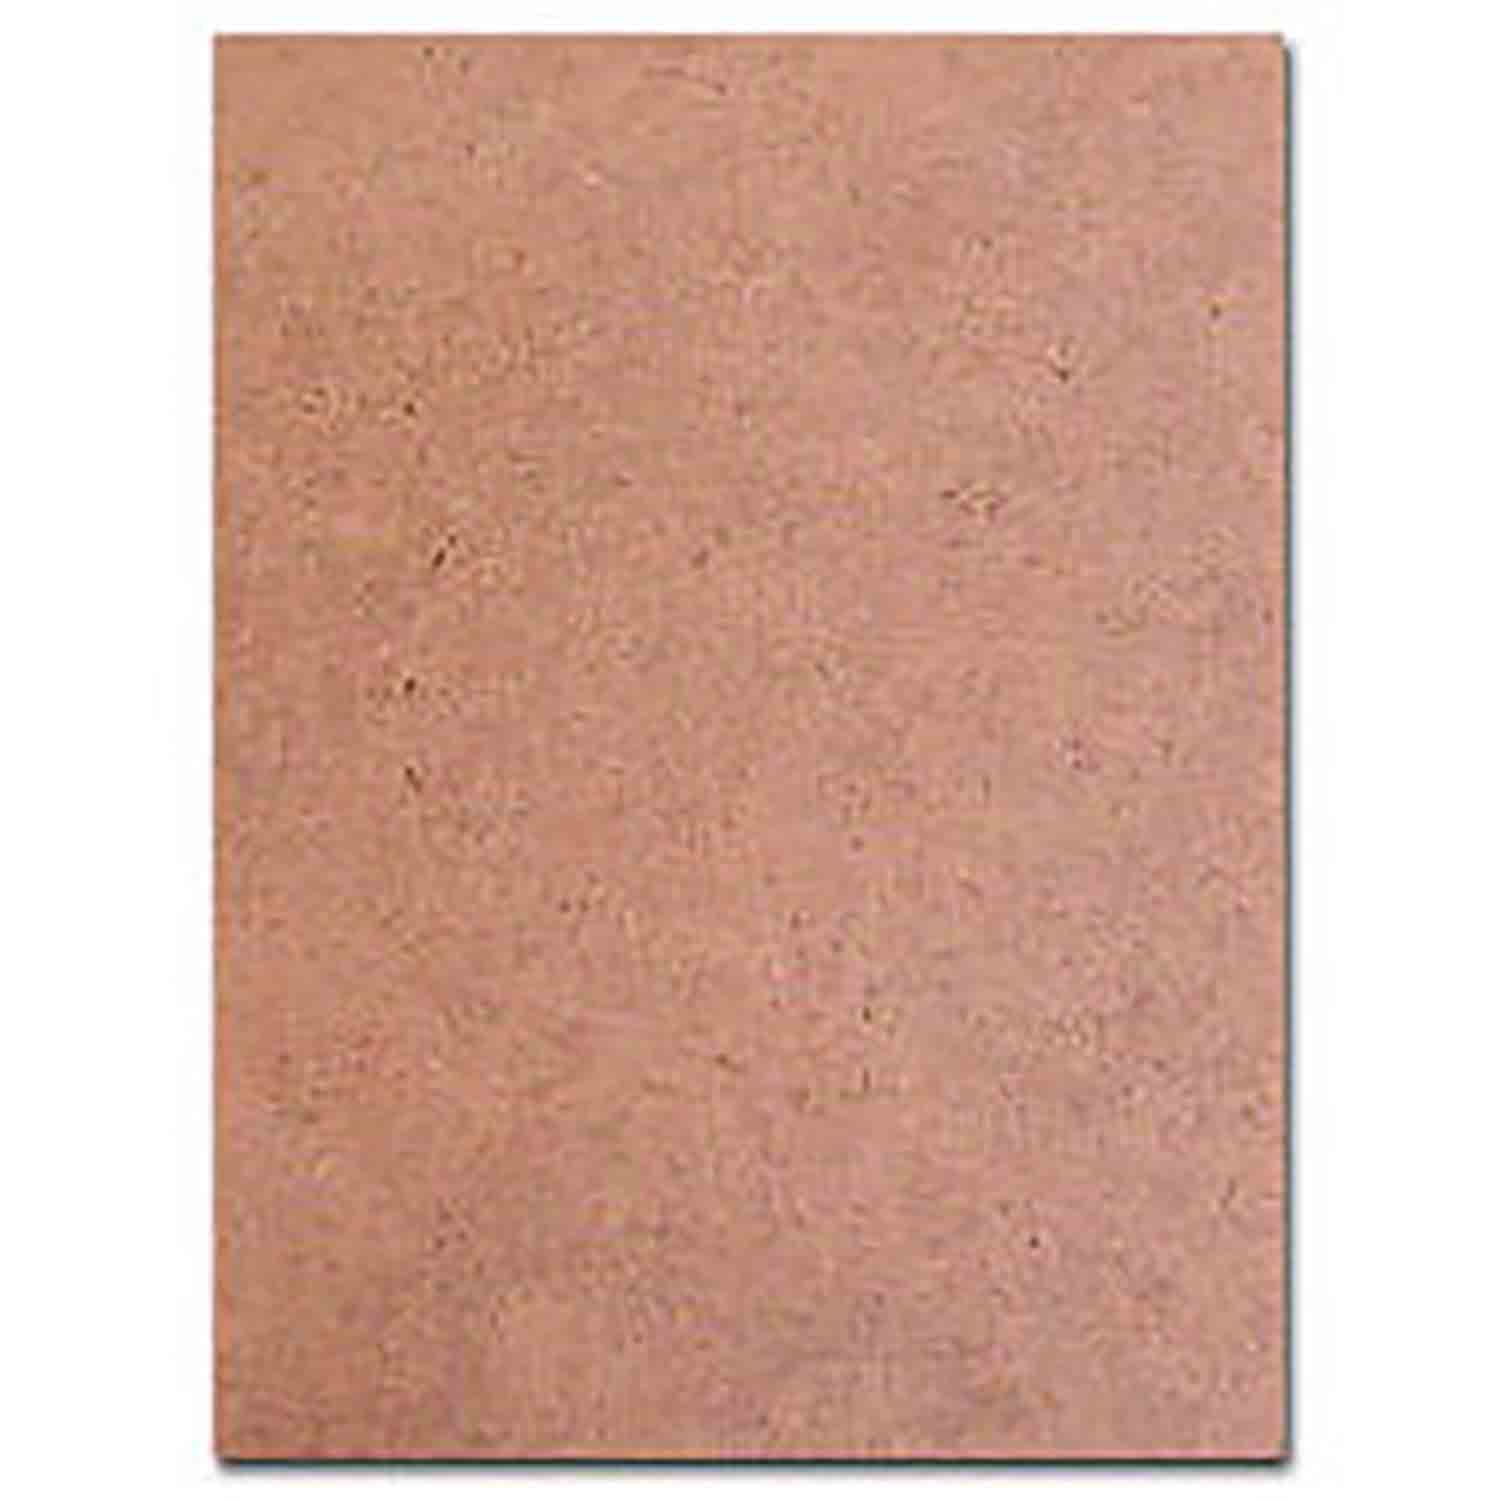 "19"" x 14"" Rectangle Masonite Half Sheet Cake Board"